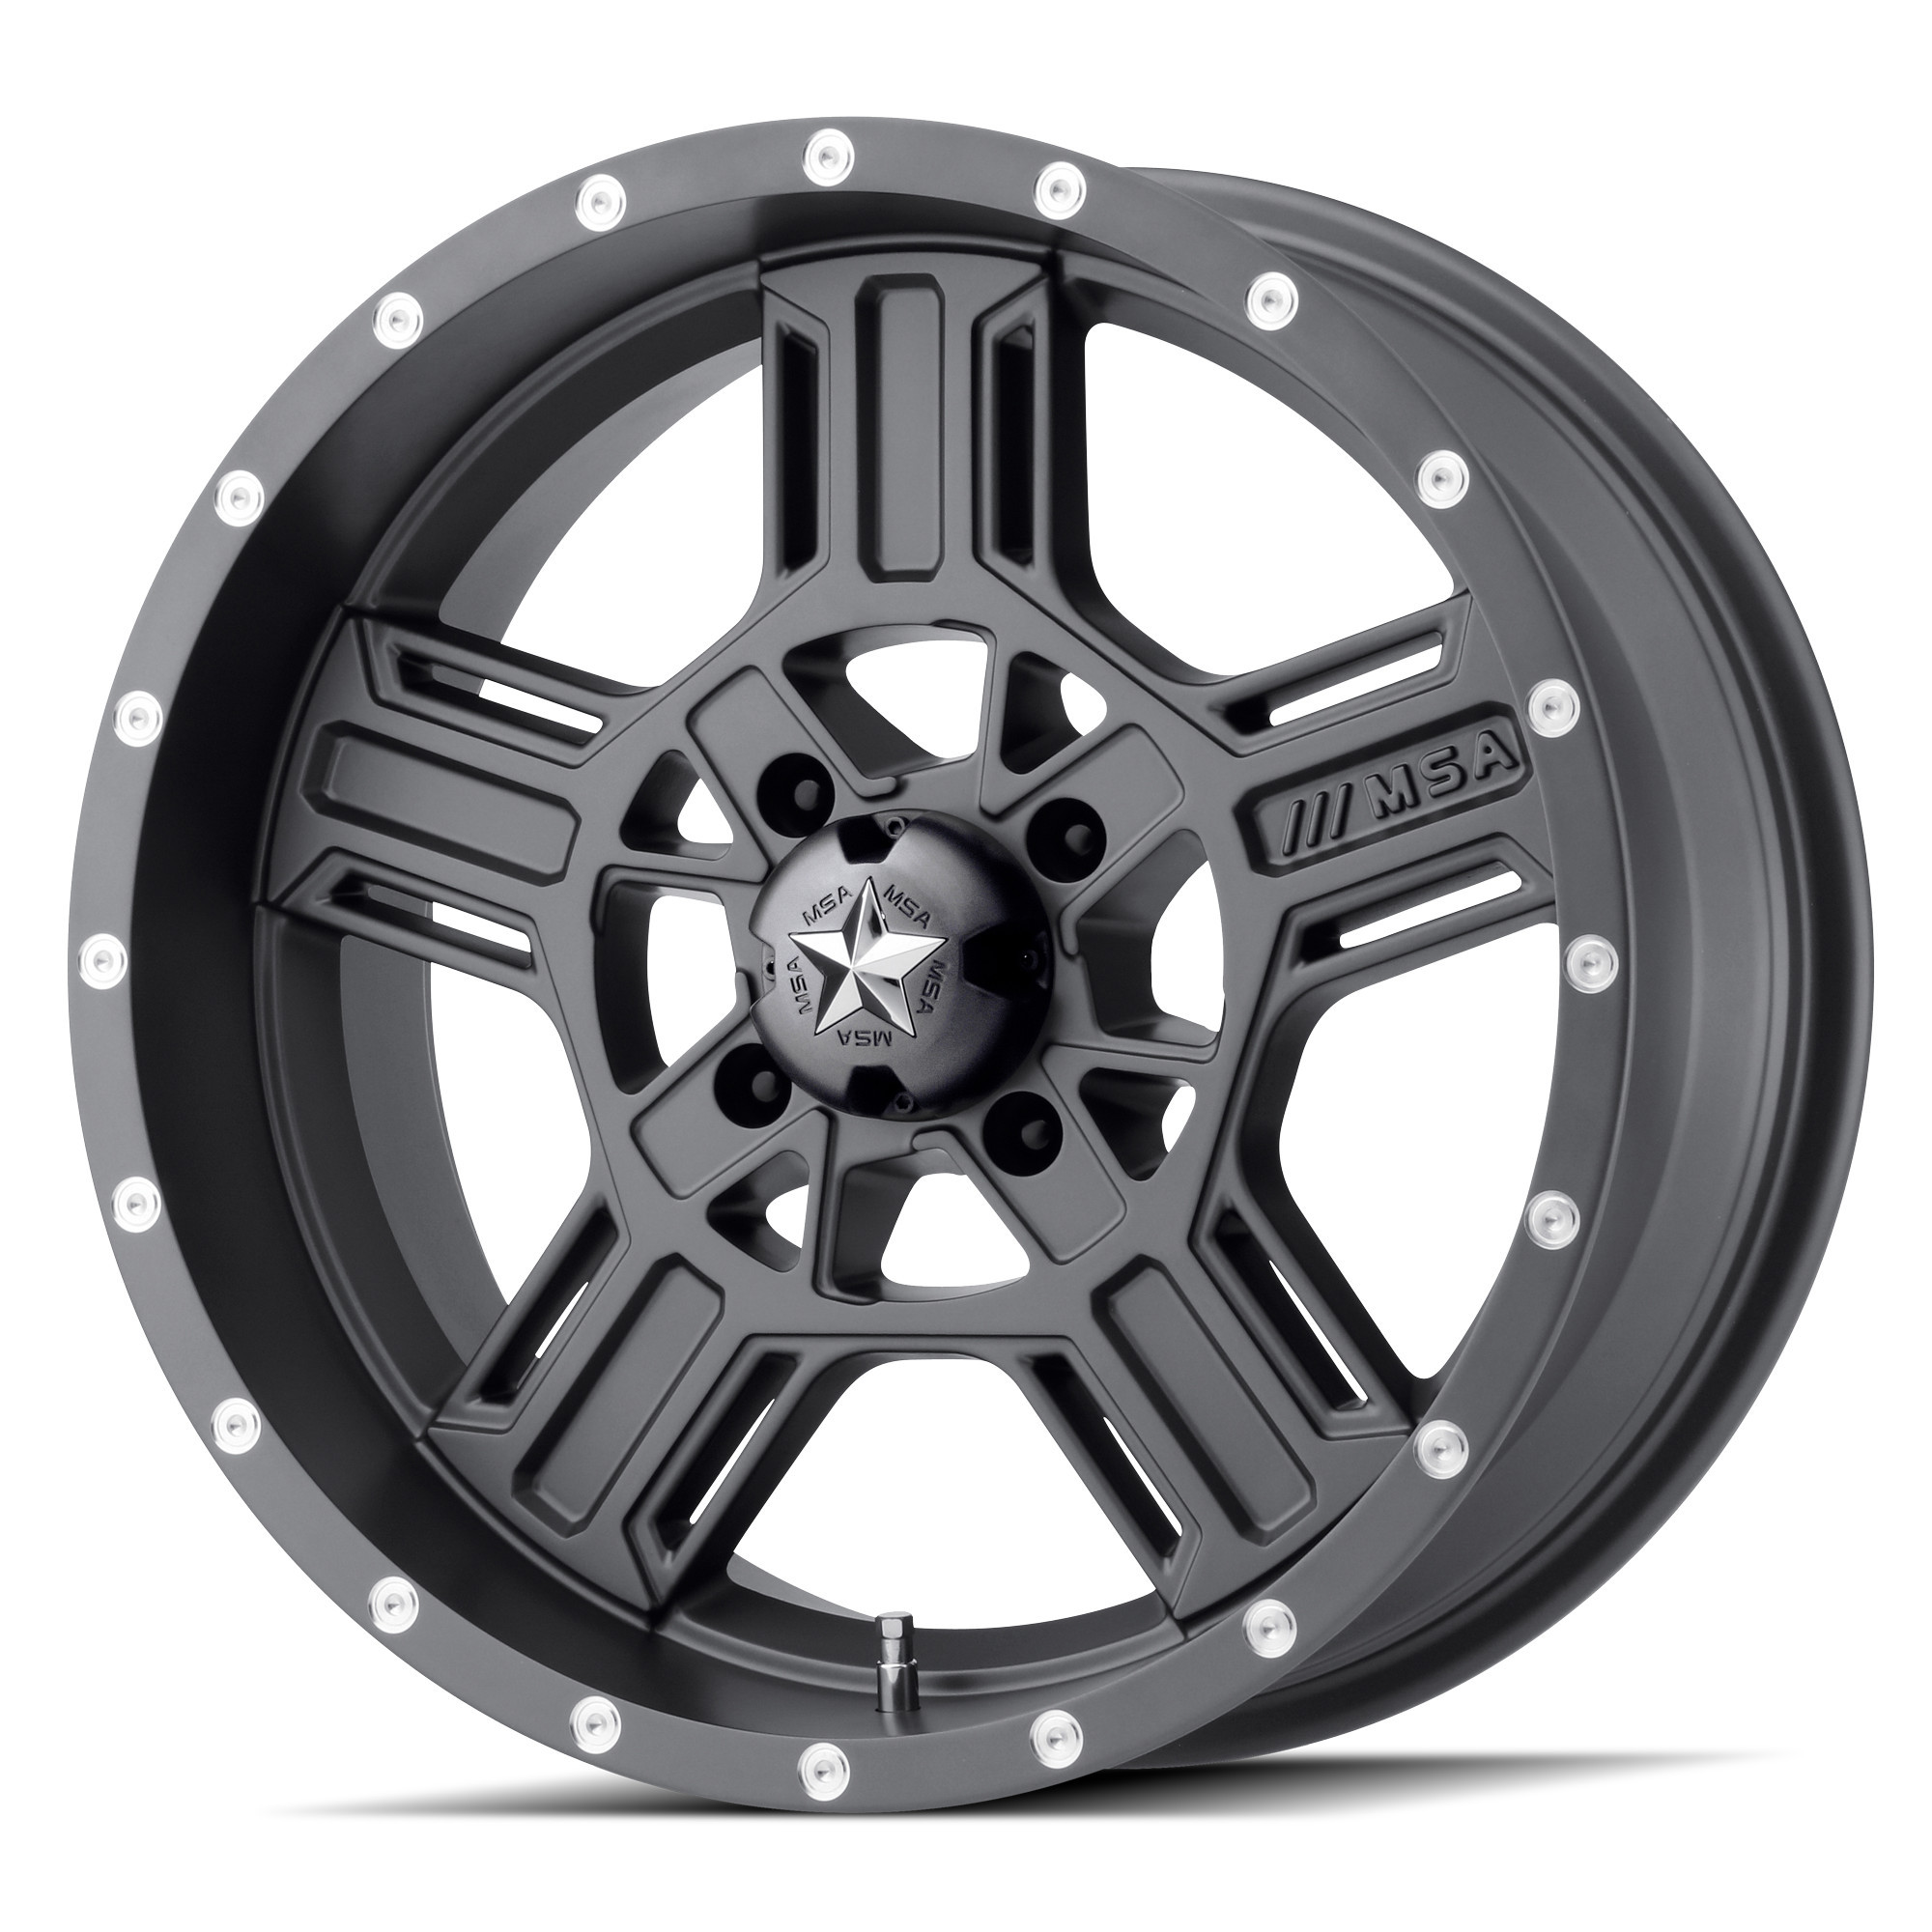 MSA 20x7 4x137 M32 Axe Matte Gray vannesarja Can-Am